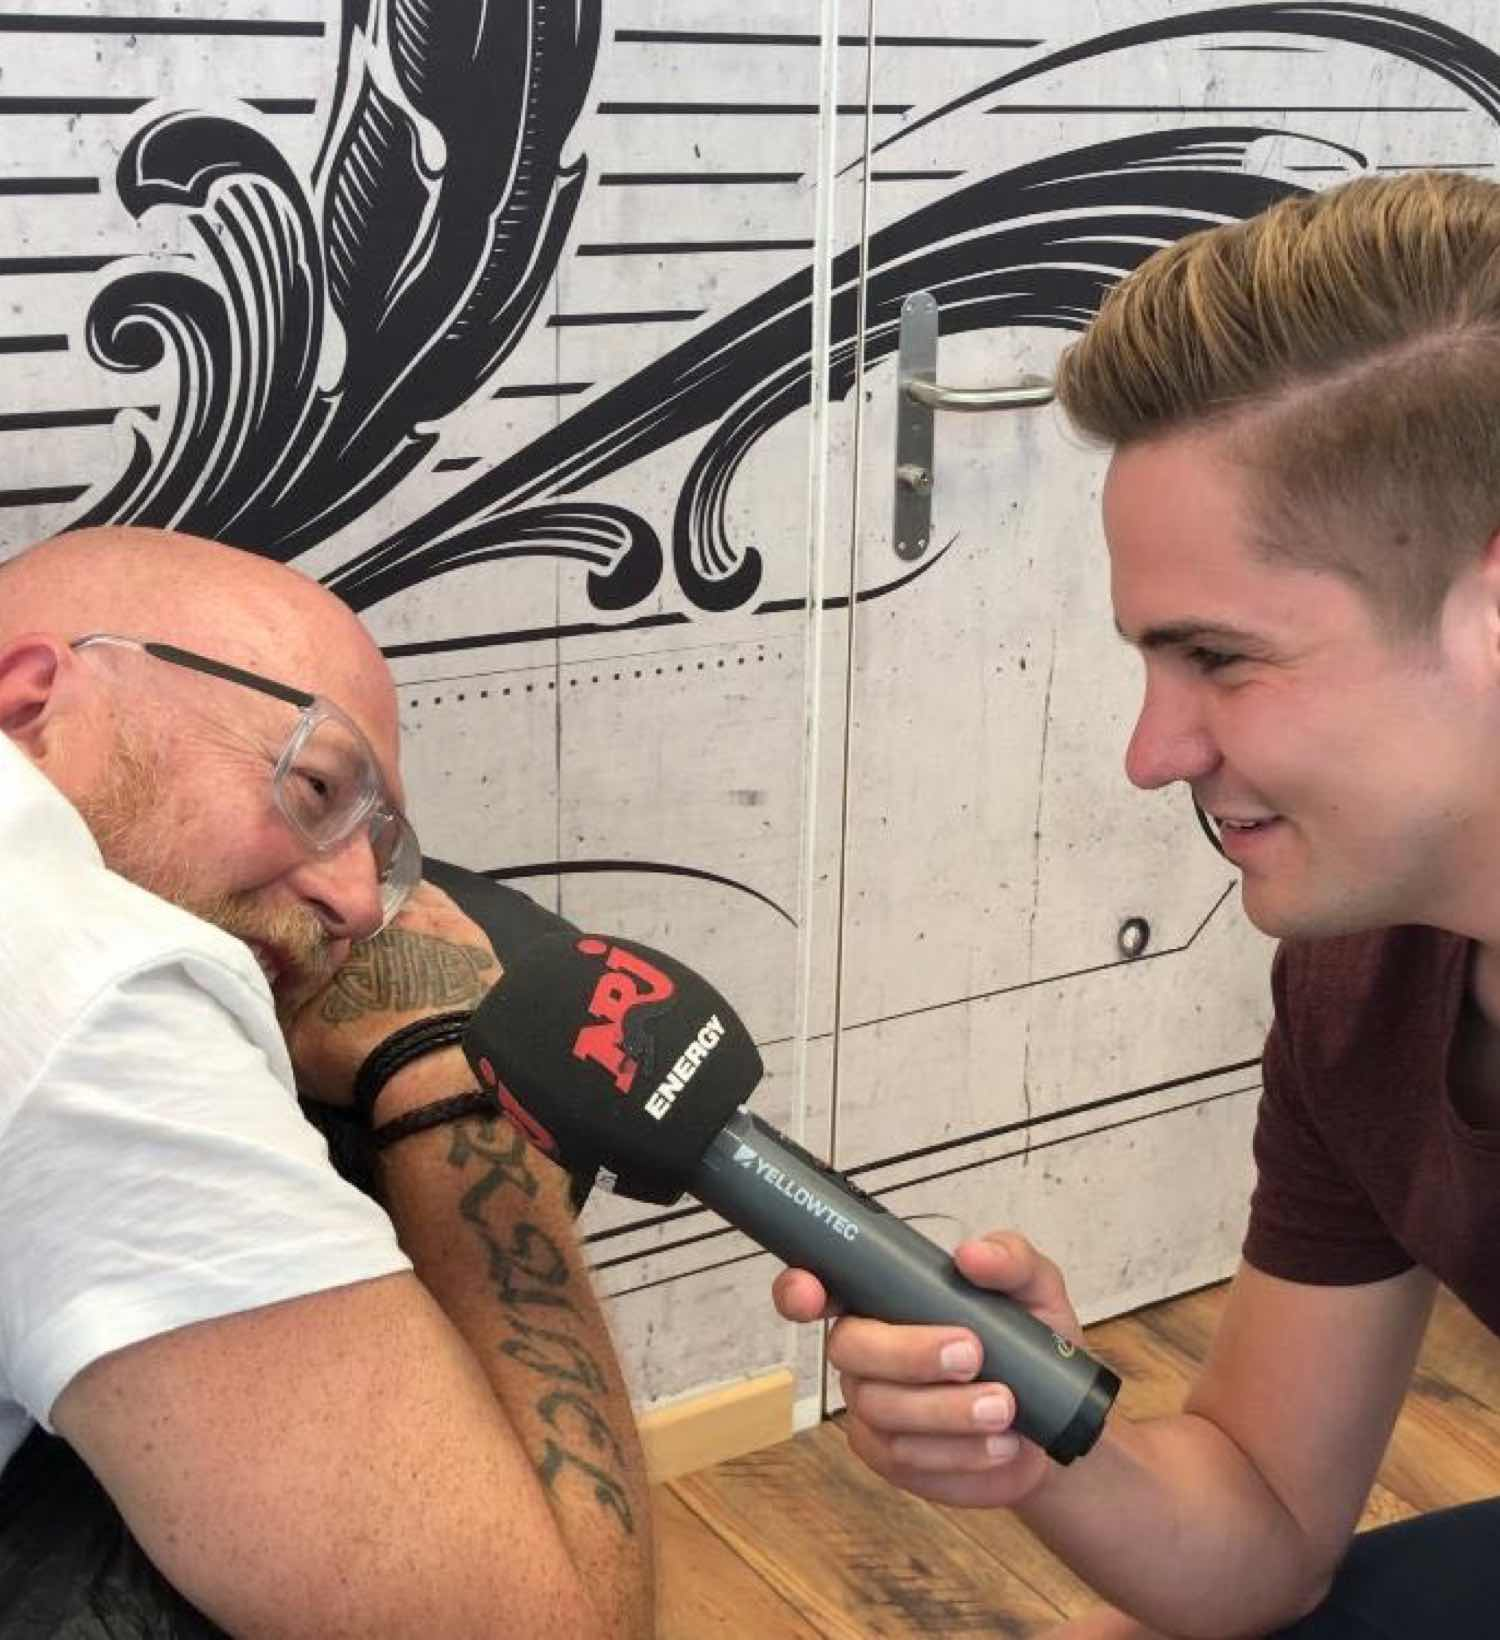 Mann mit I love BL-Tattoo wird interviewt